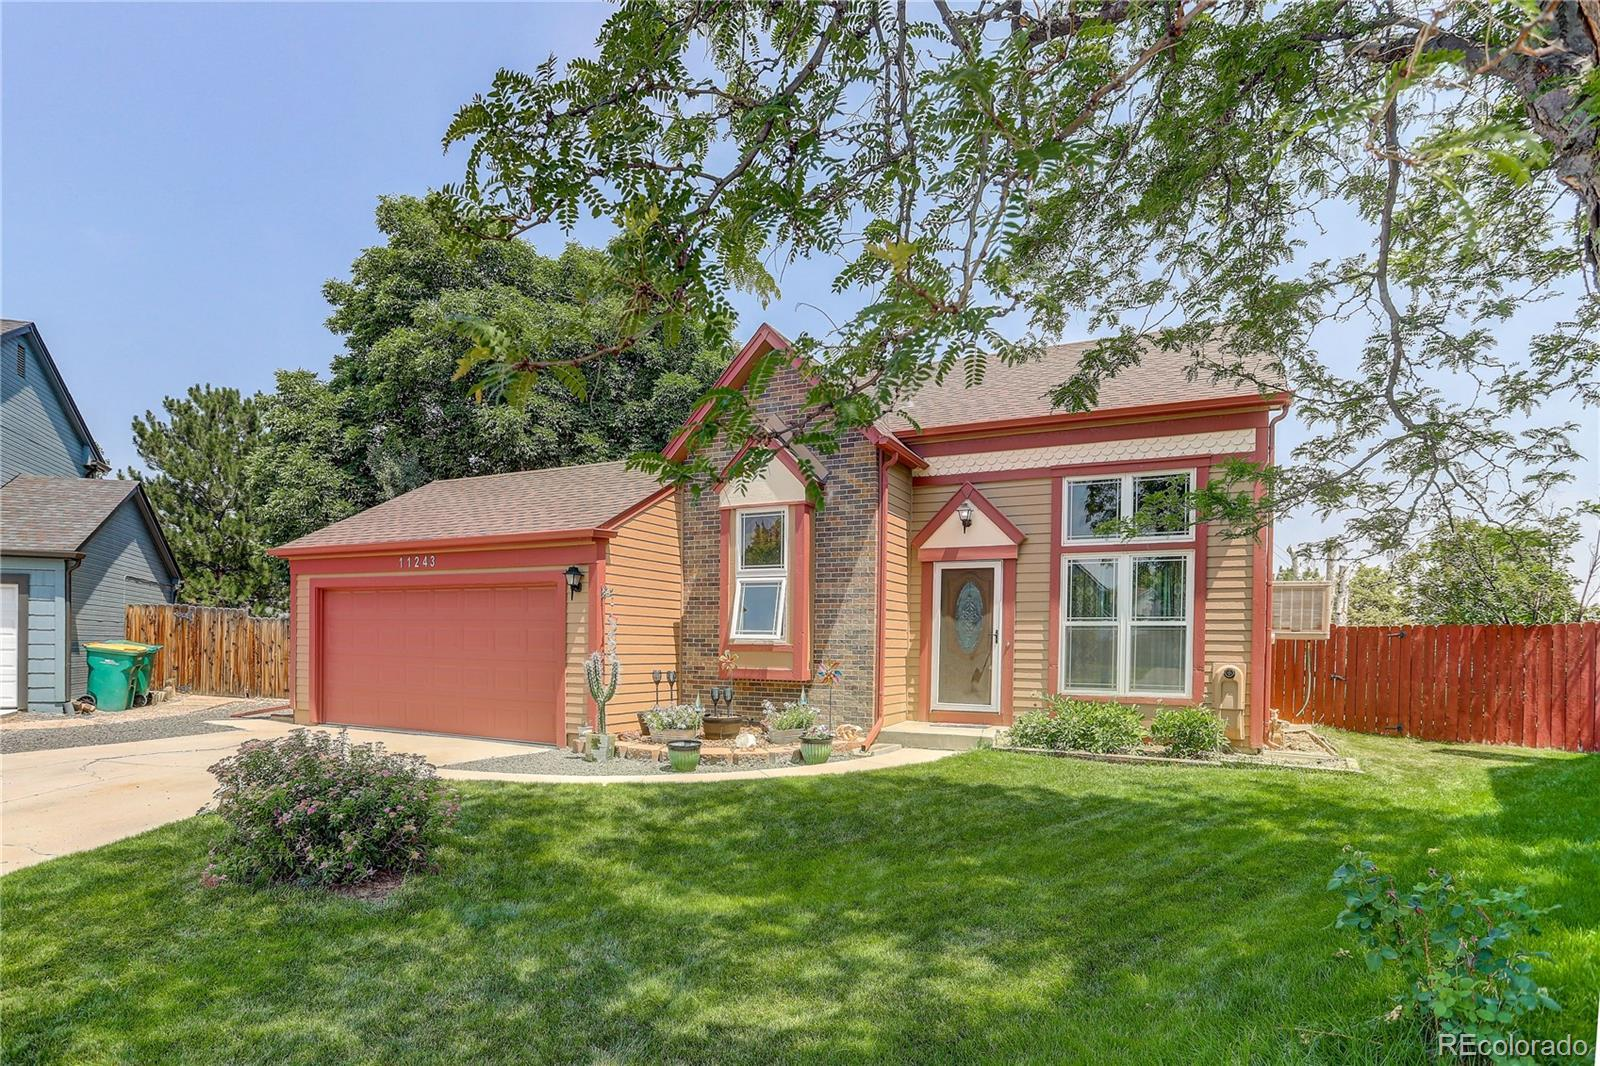 11243 W 102nd Drive, Westminster, CO 80021 - #: 8730512